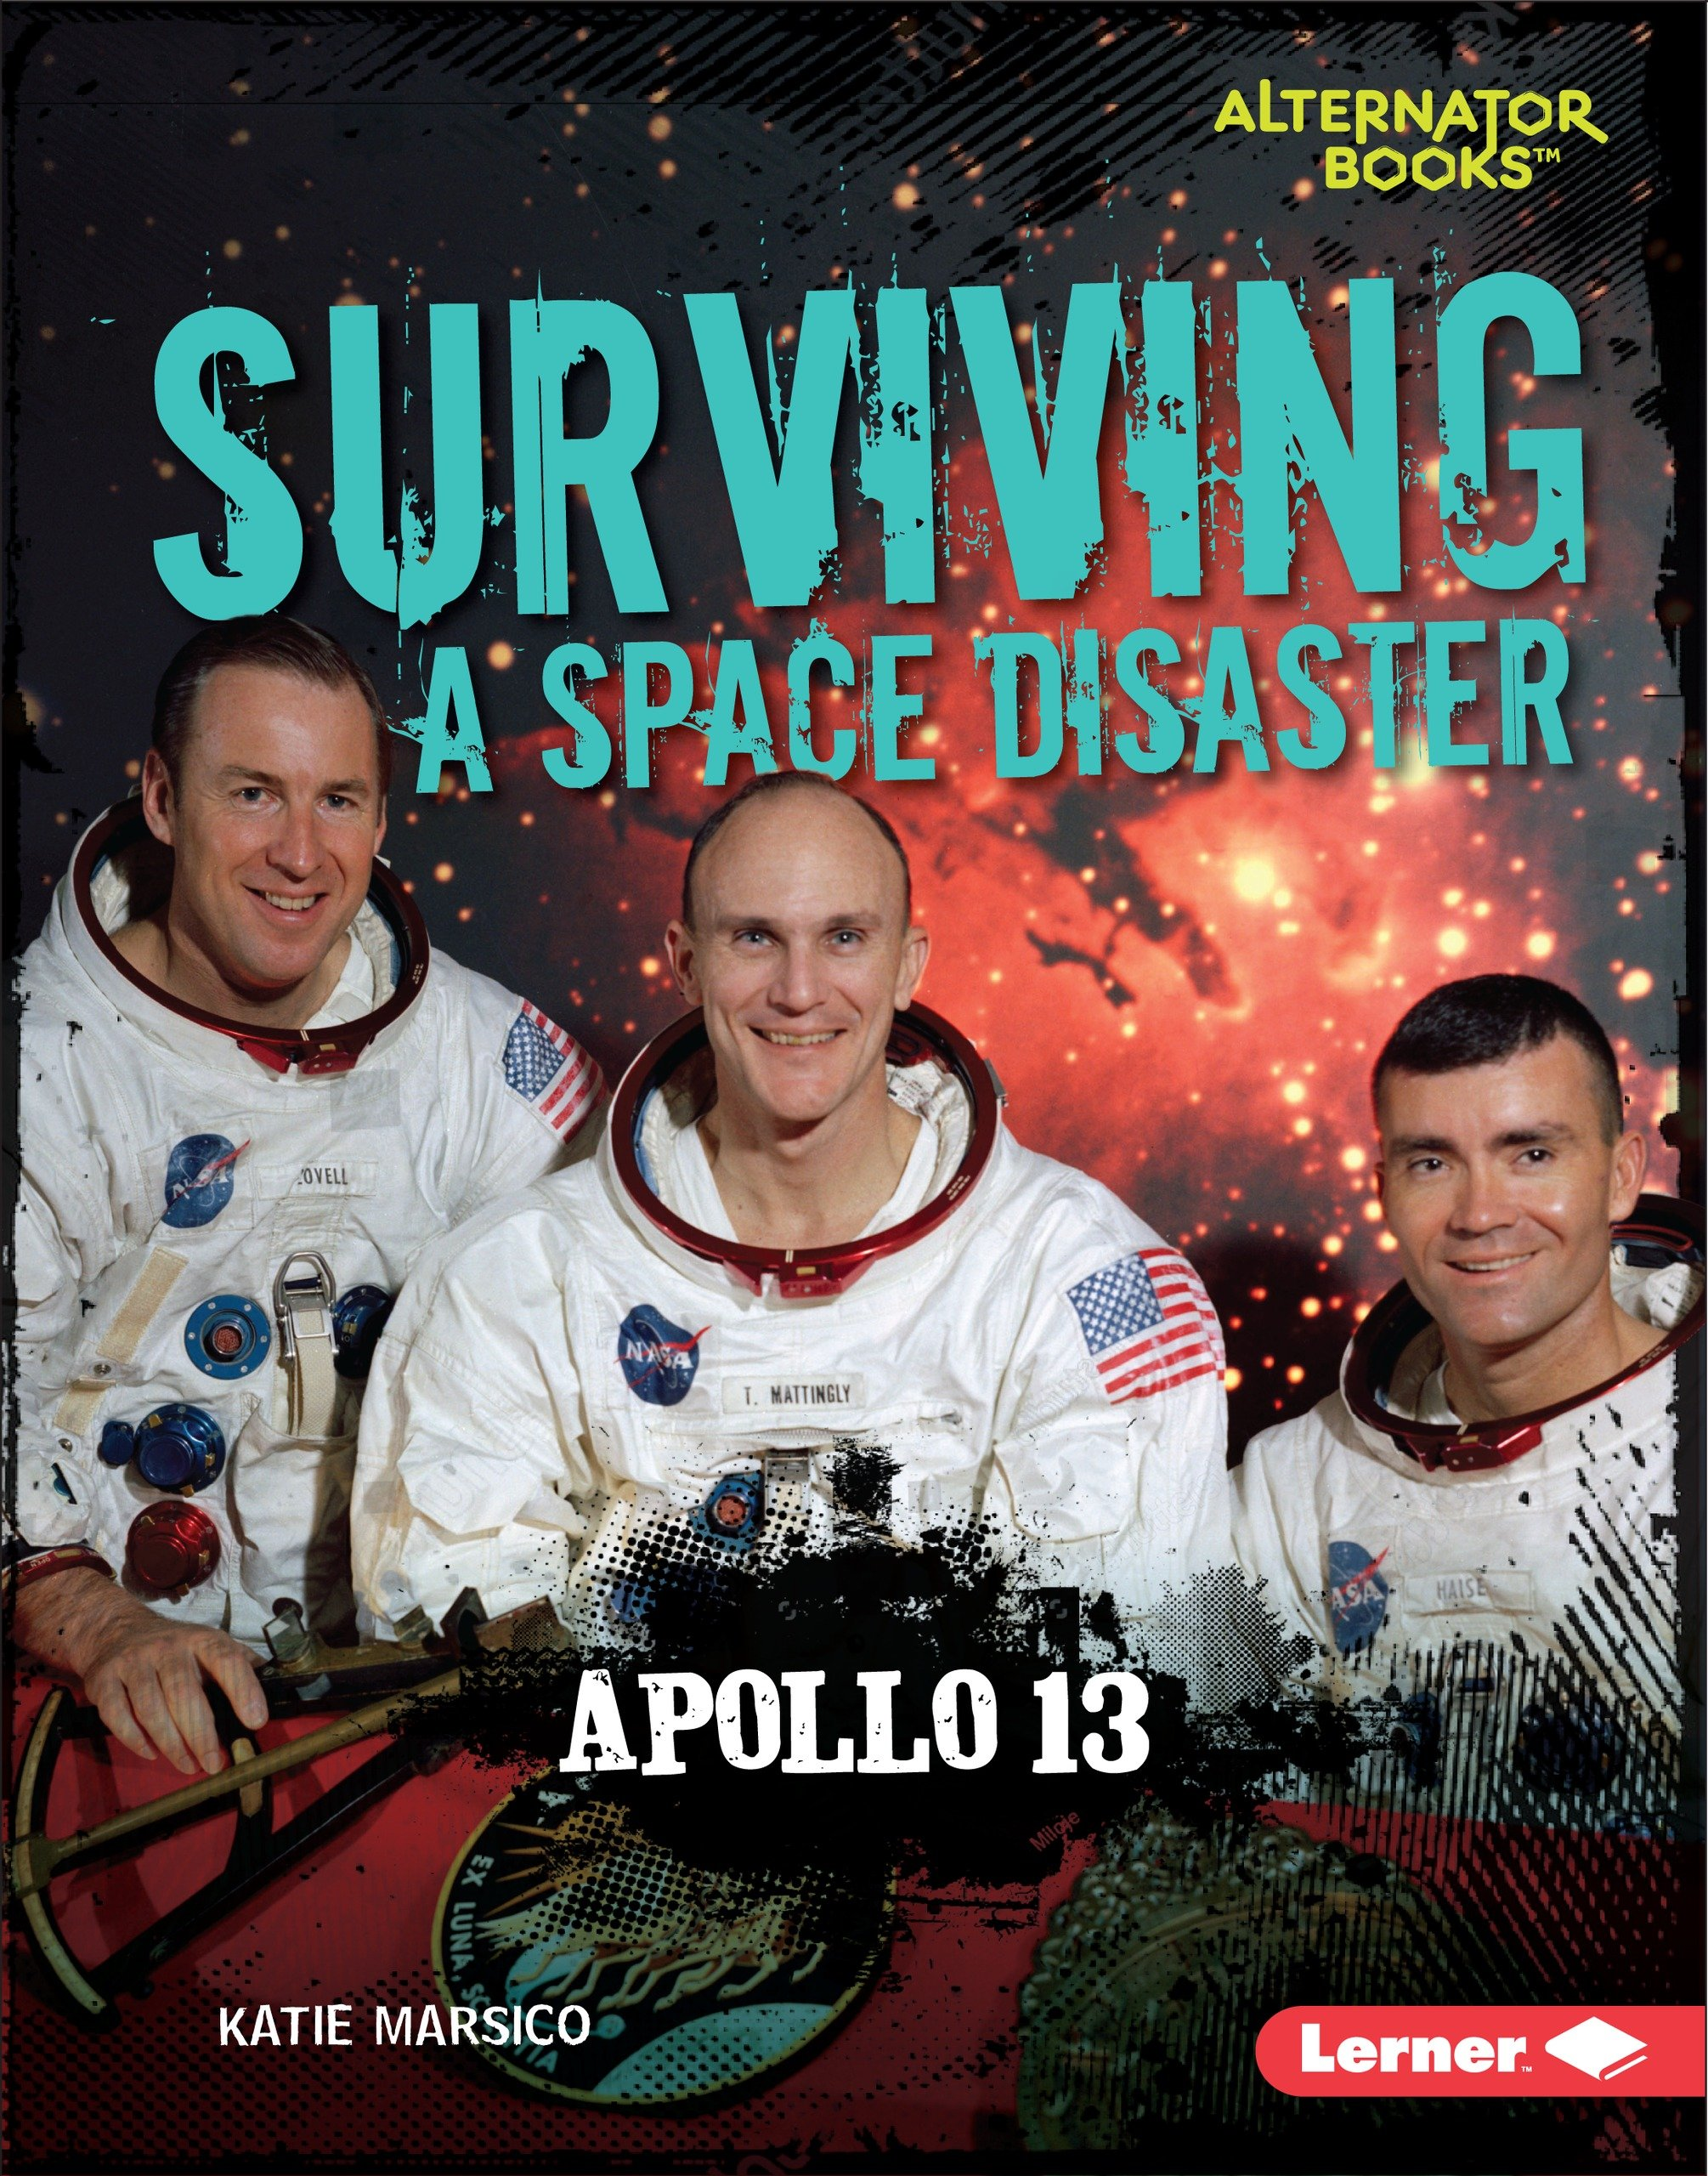 Surviving a Space Disaster: Apollo 13 (They Survived Alternator Books)